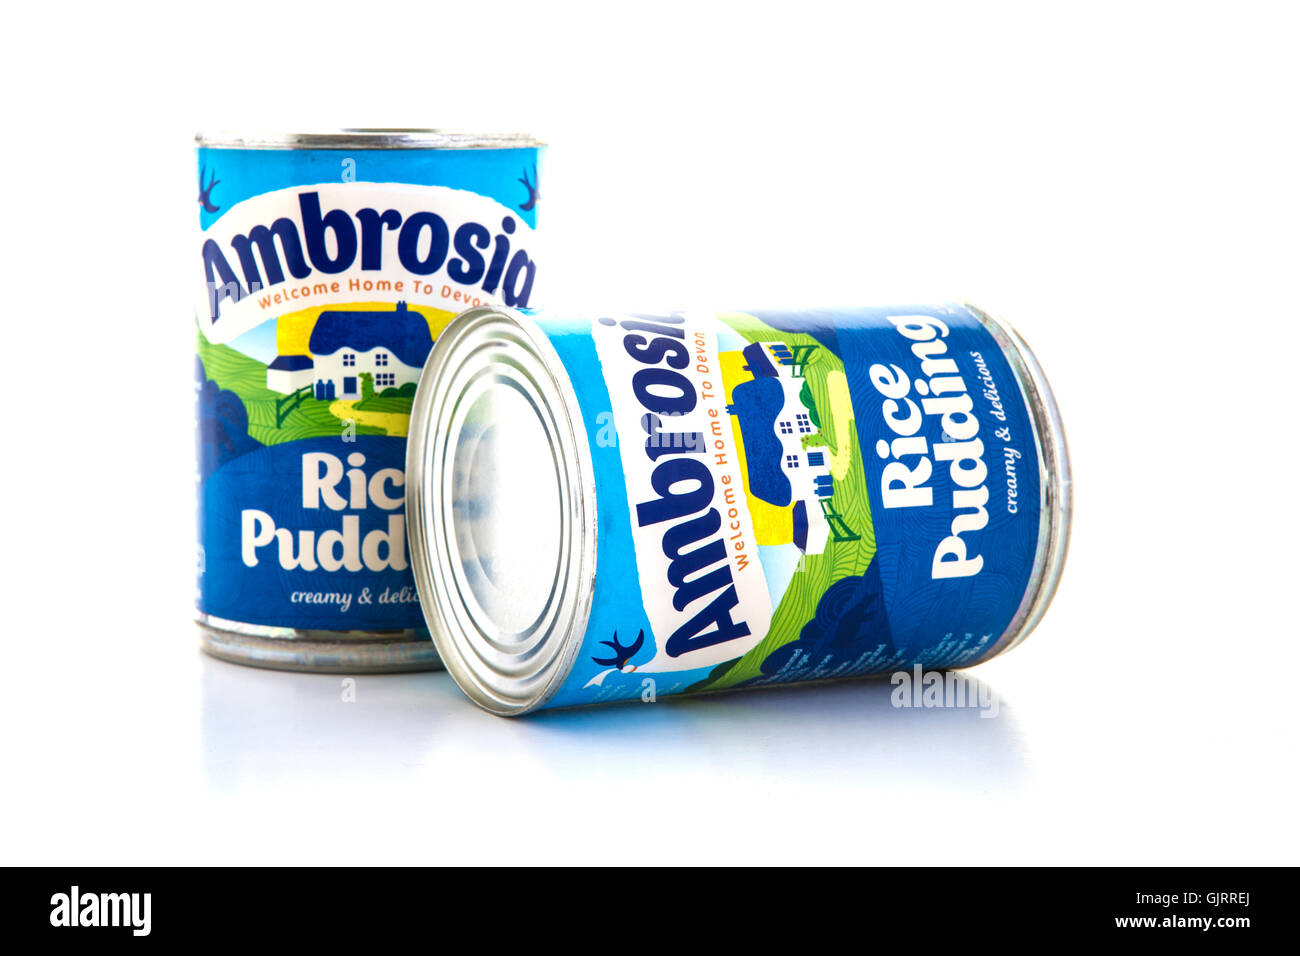 Two tins of Ambrosia rice pudding on a white background - Stock Image